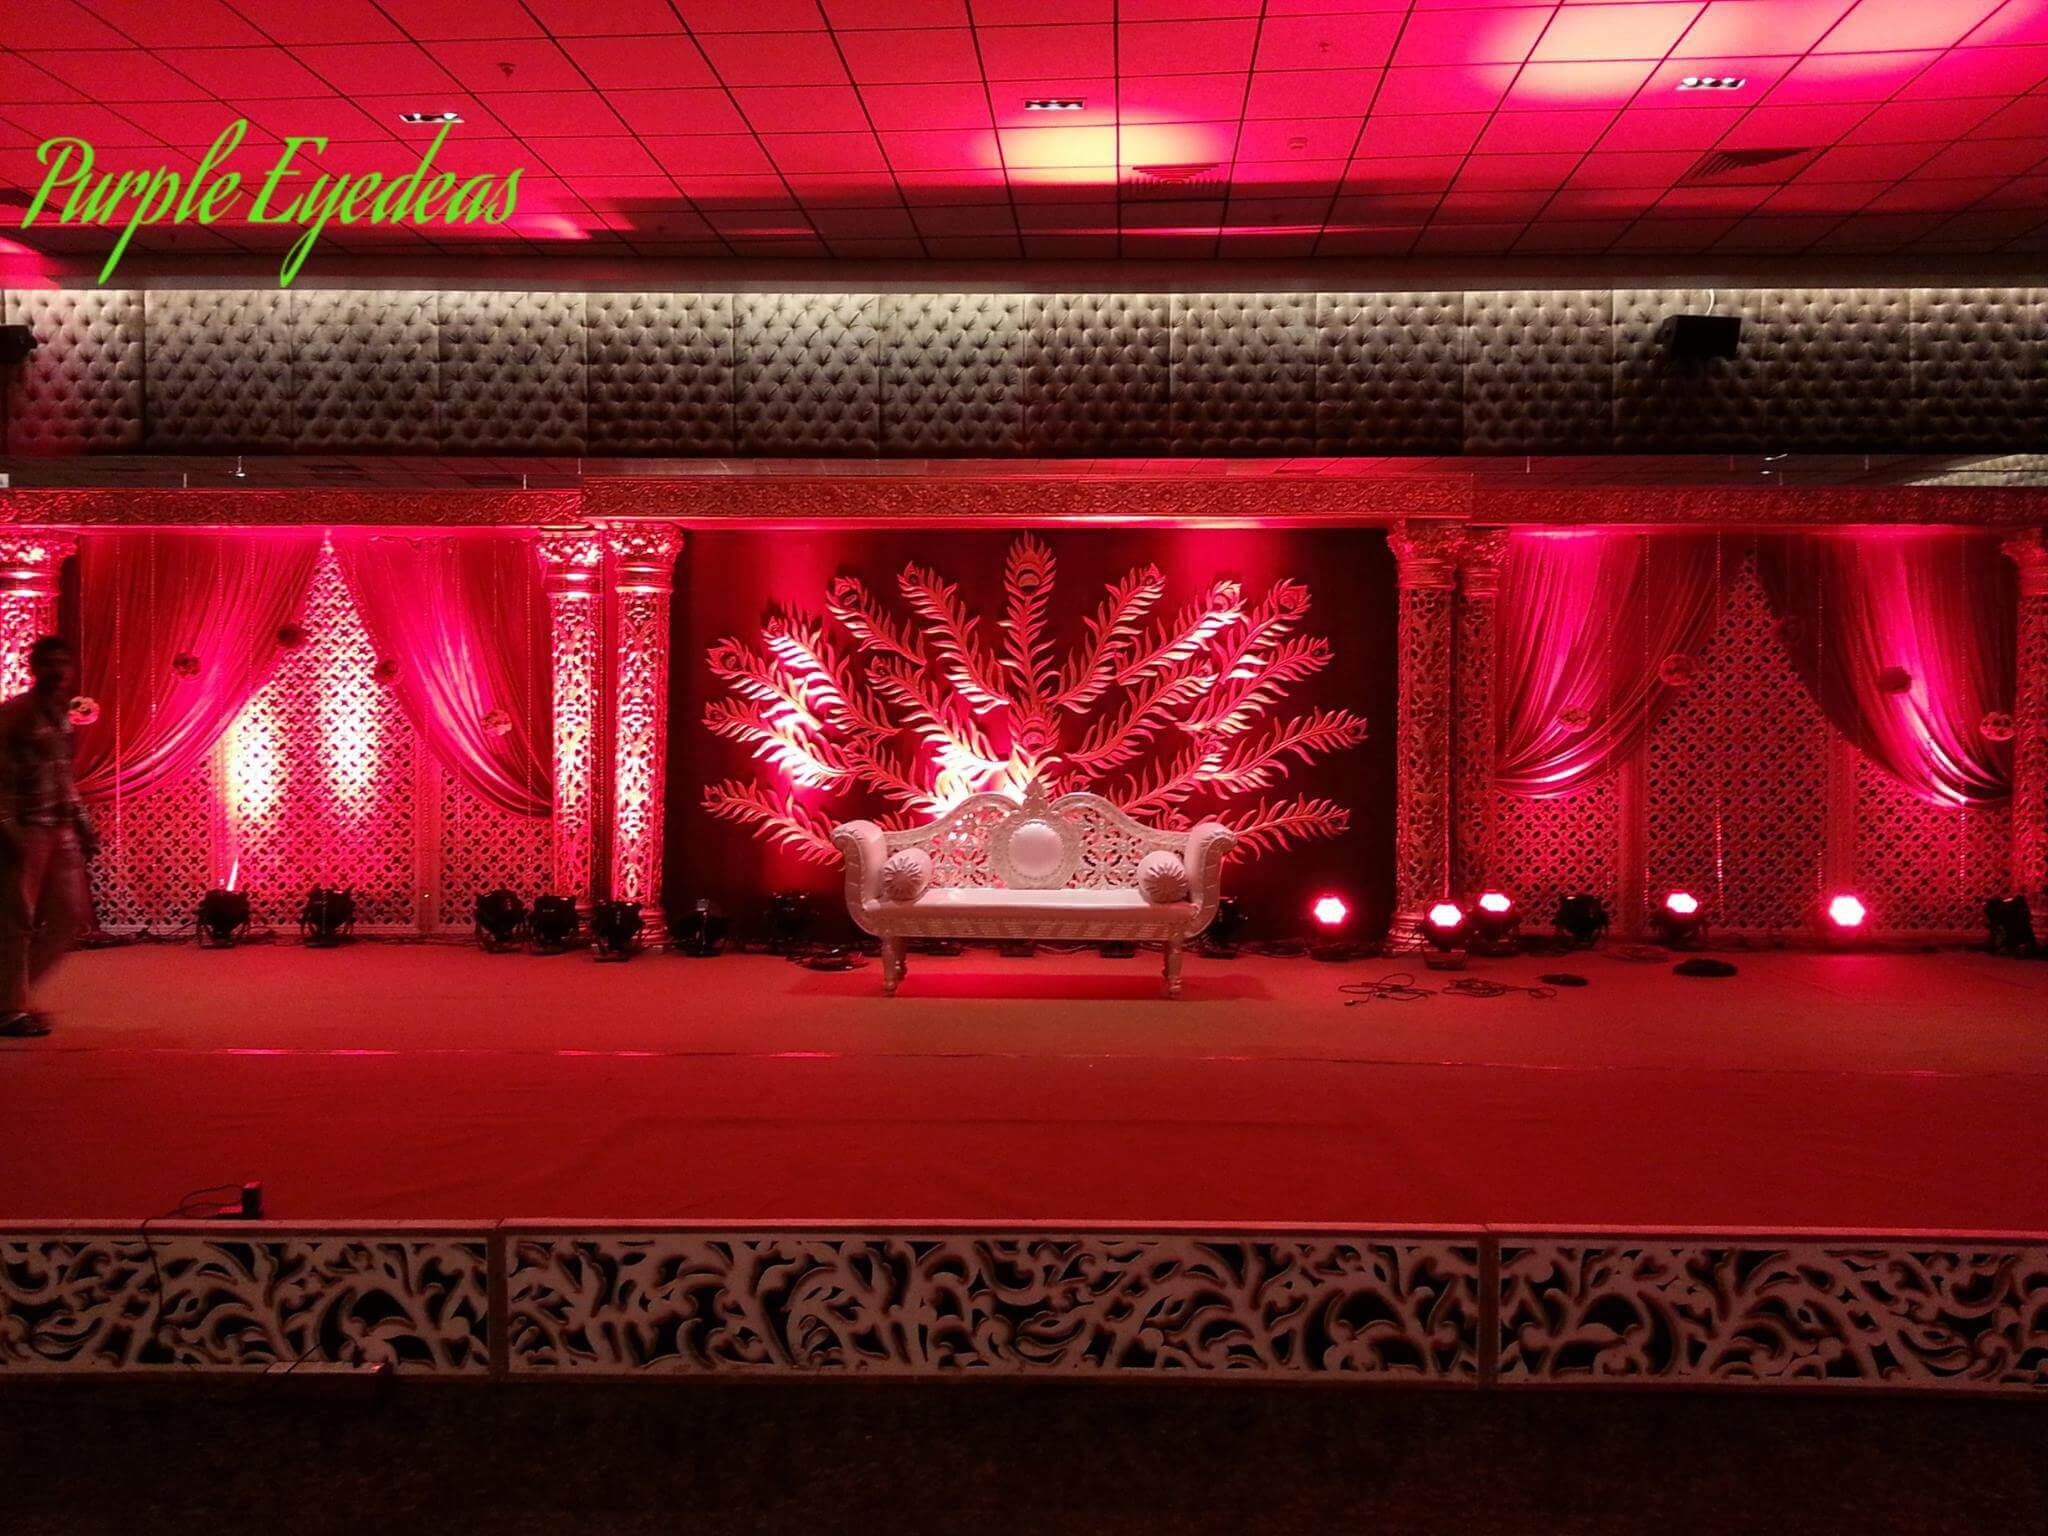 Purple Eyedeas - wedding planner hyderabad